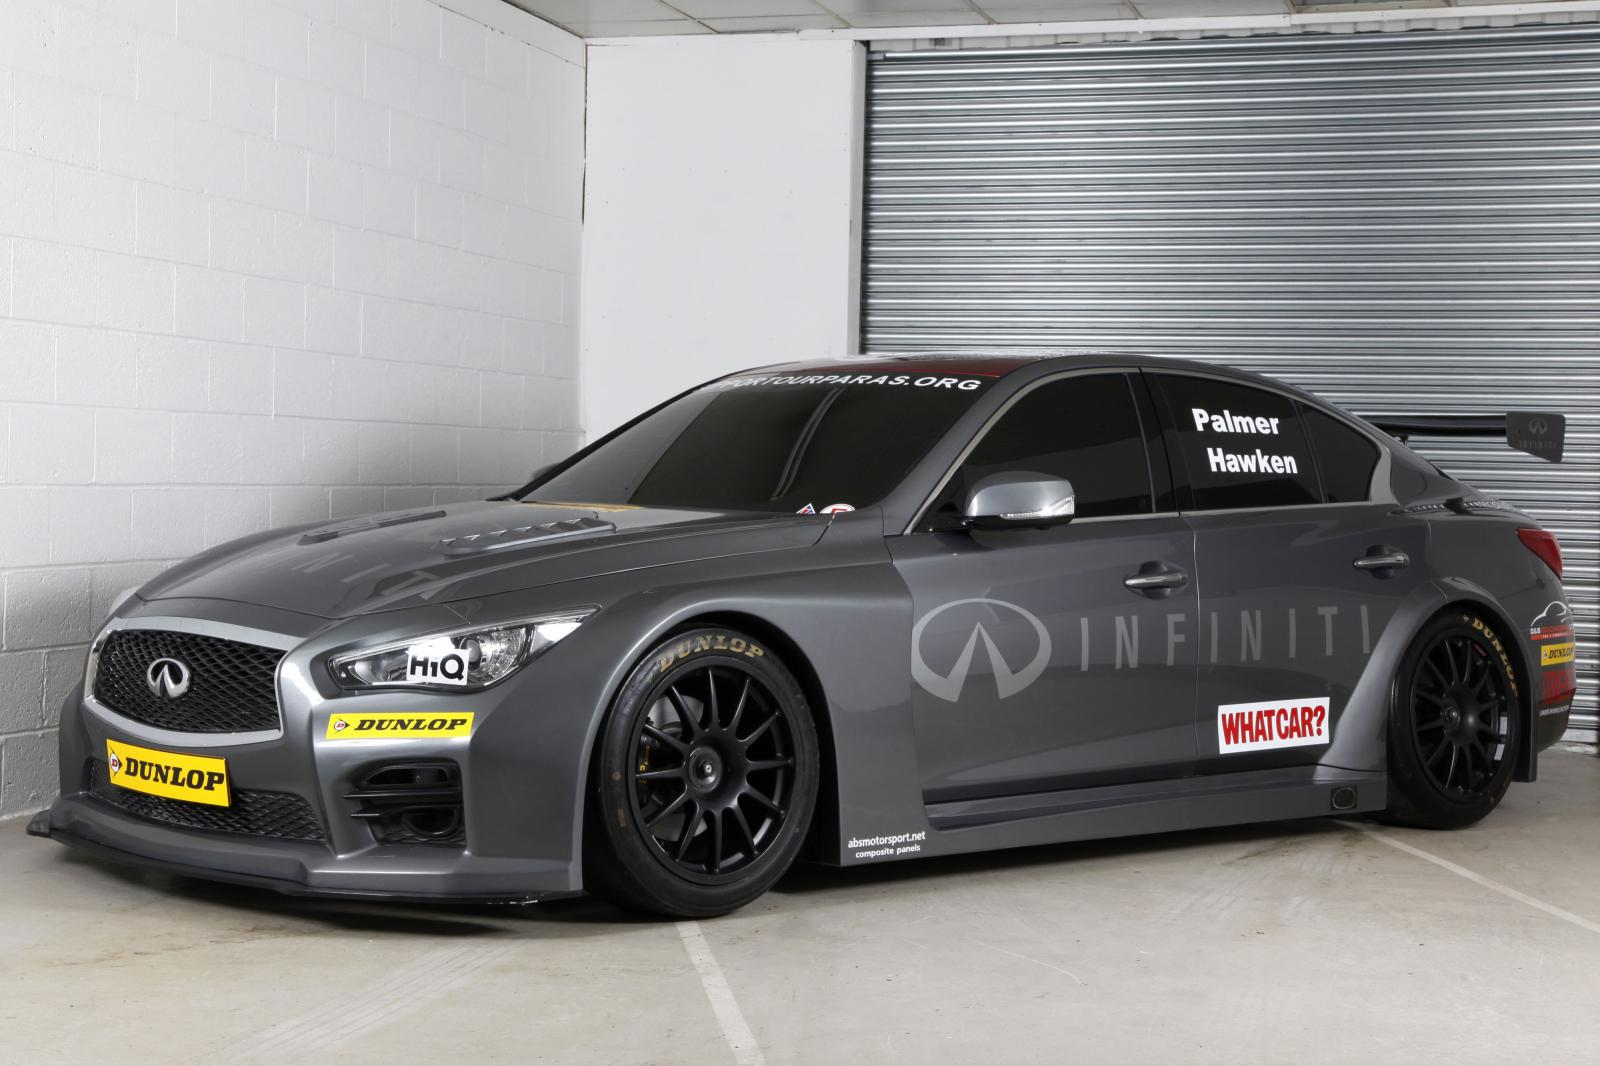 Infiniti Enters 2015 Btcc With Q50 Sedan And Charitable